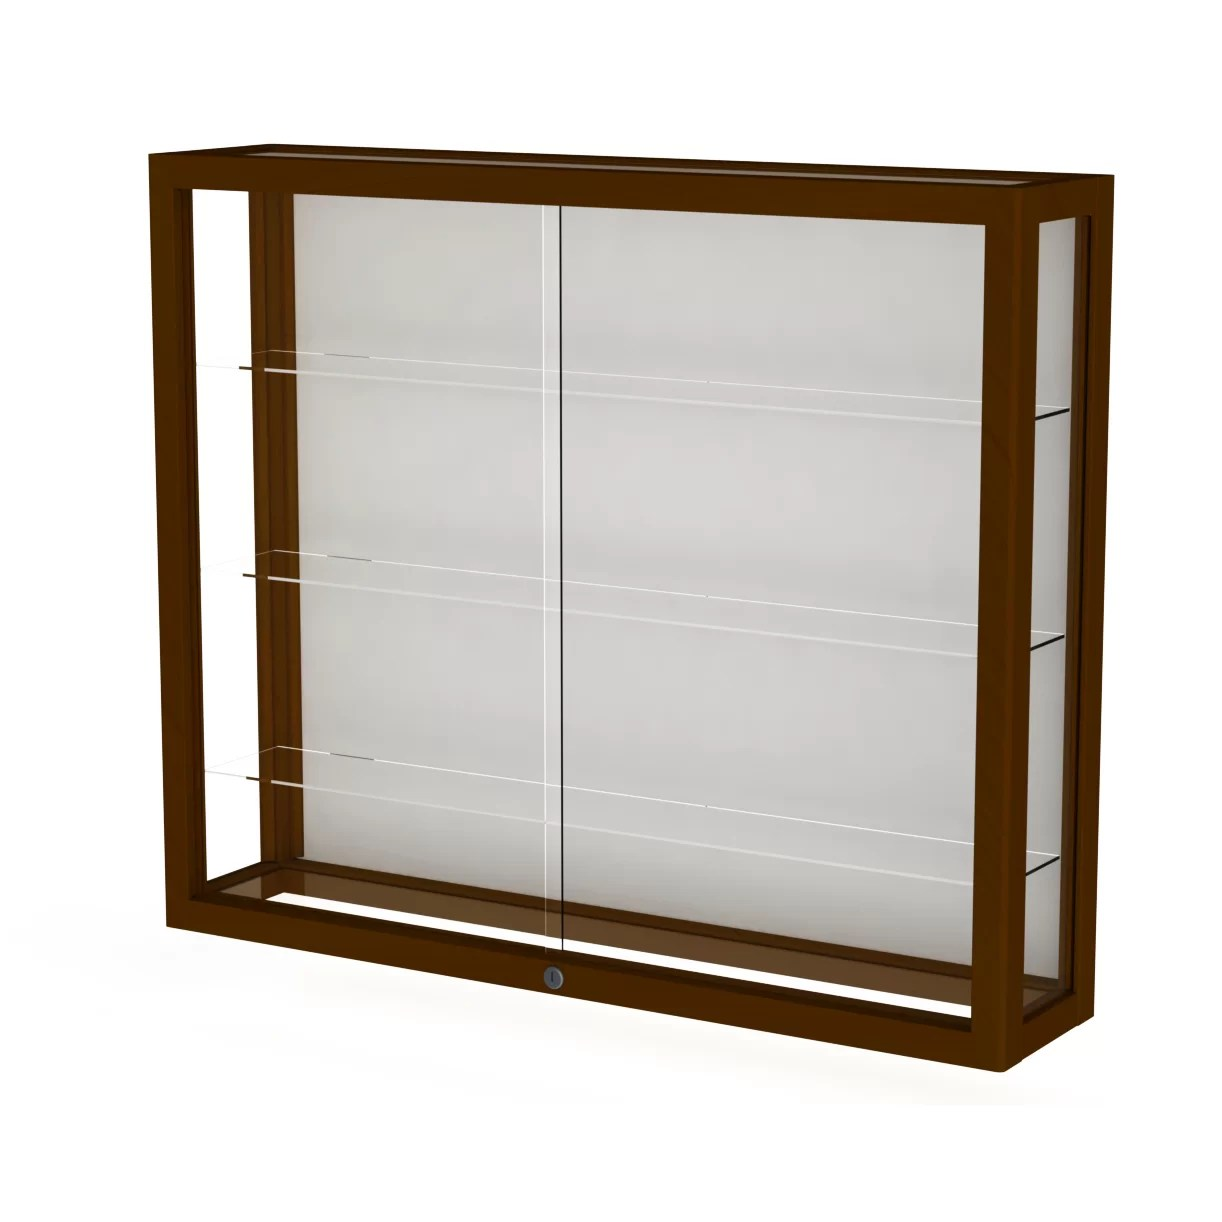 Wall Mounted Display Case Heirloom Series Wall Display Case